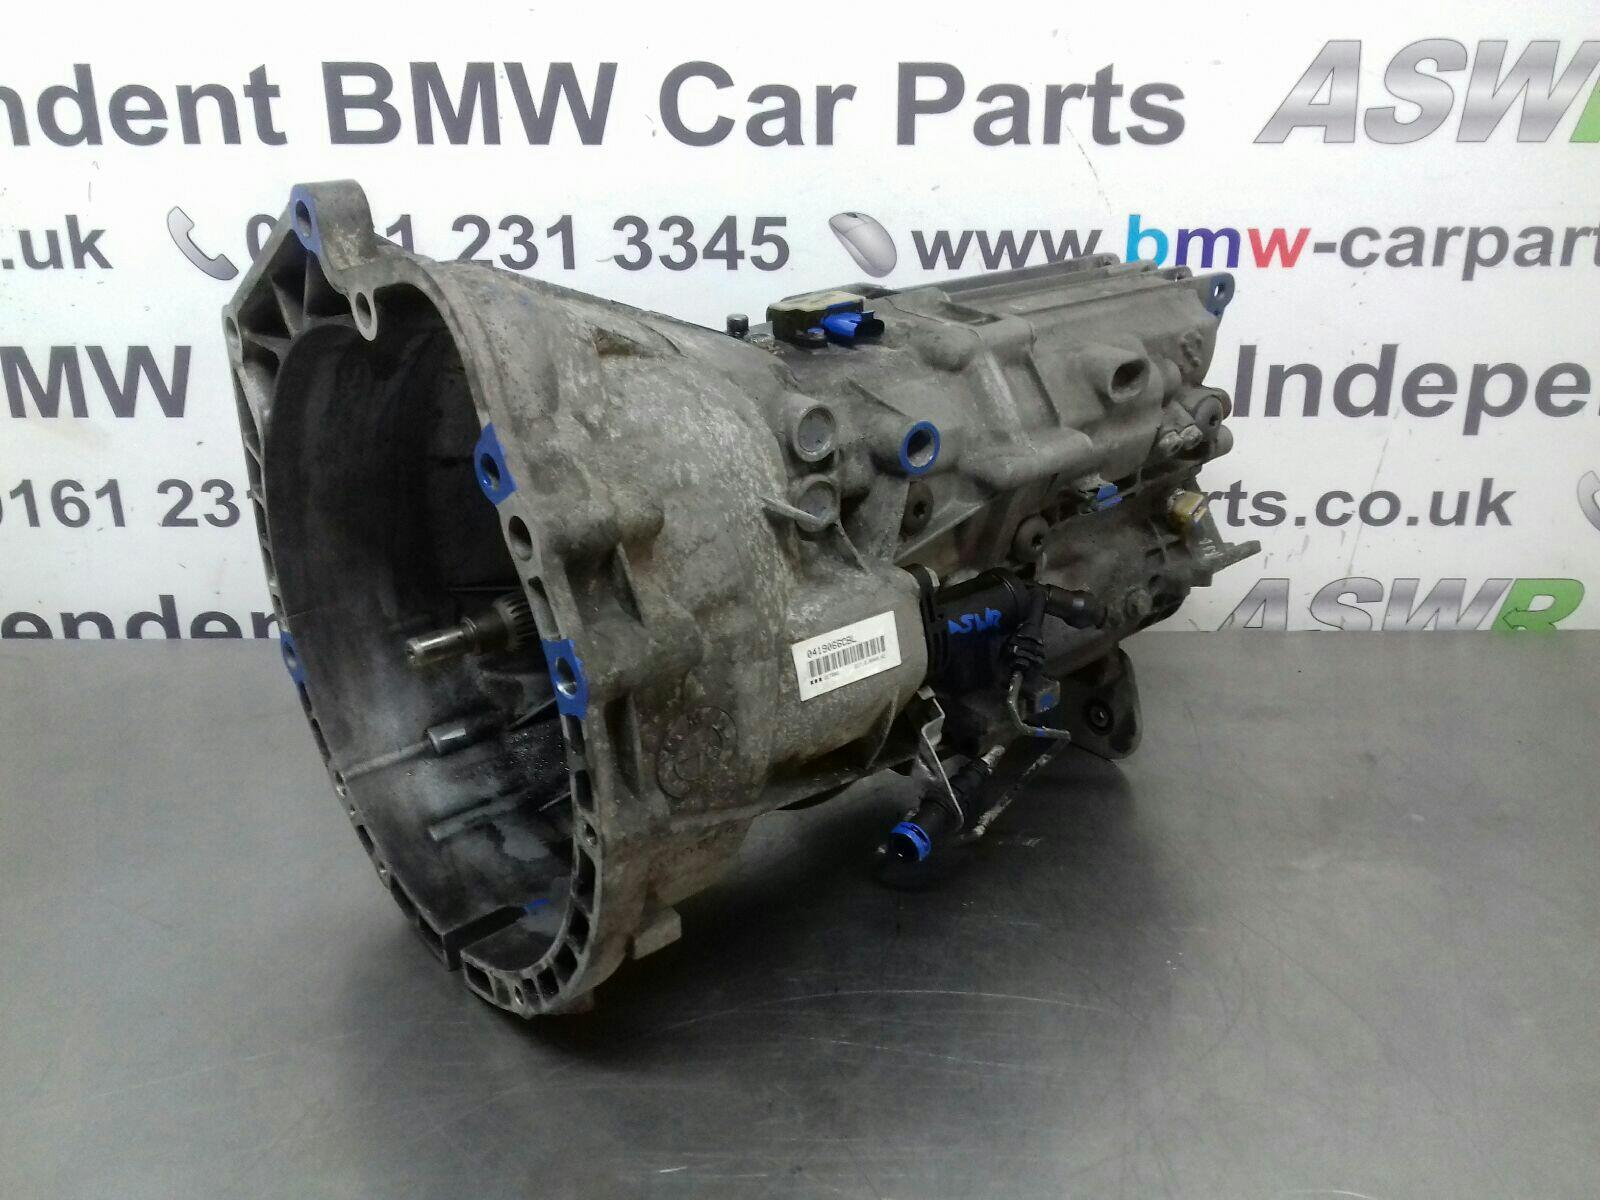 BMW E87 E90 1/3 SERIES Manual Gearbox 23007626315 breaking for used